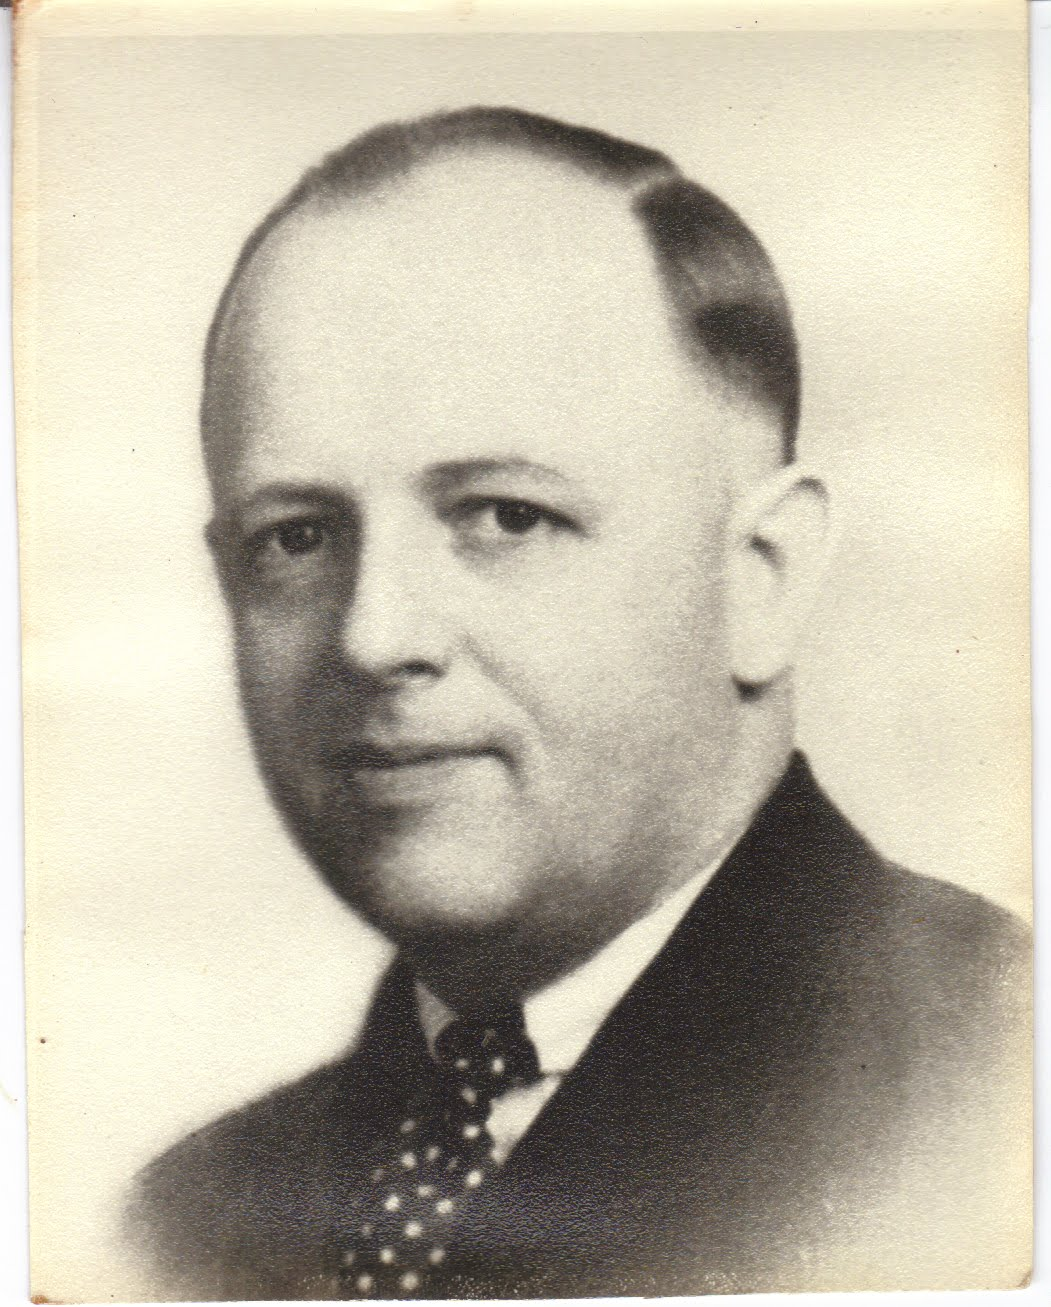 KENNETH A. WRIGHT (1899-1952)